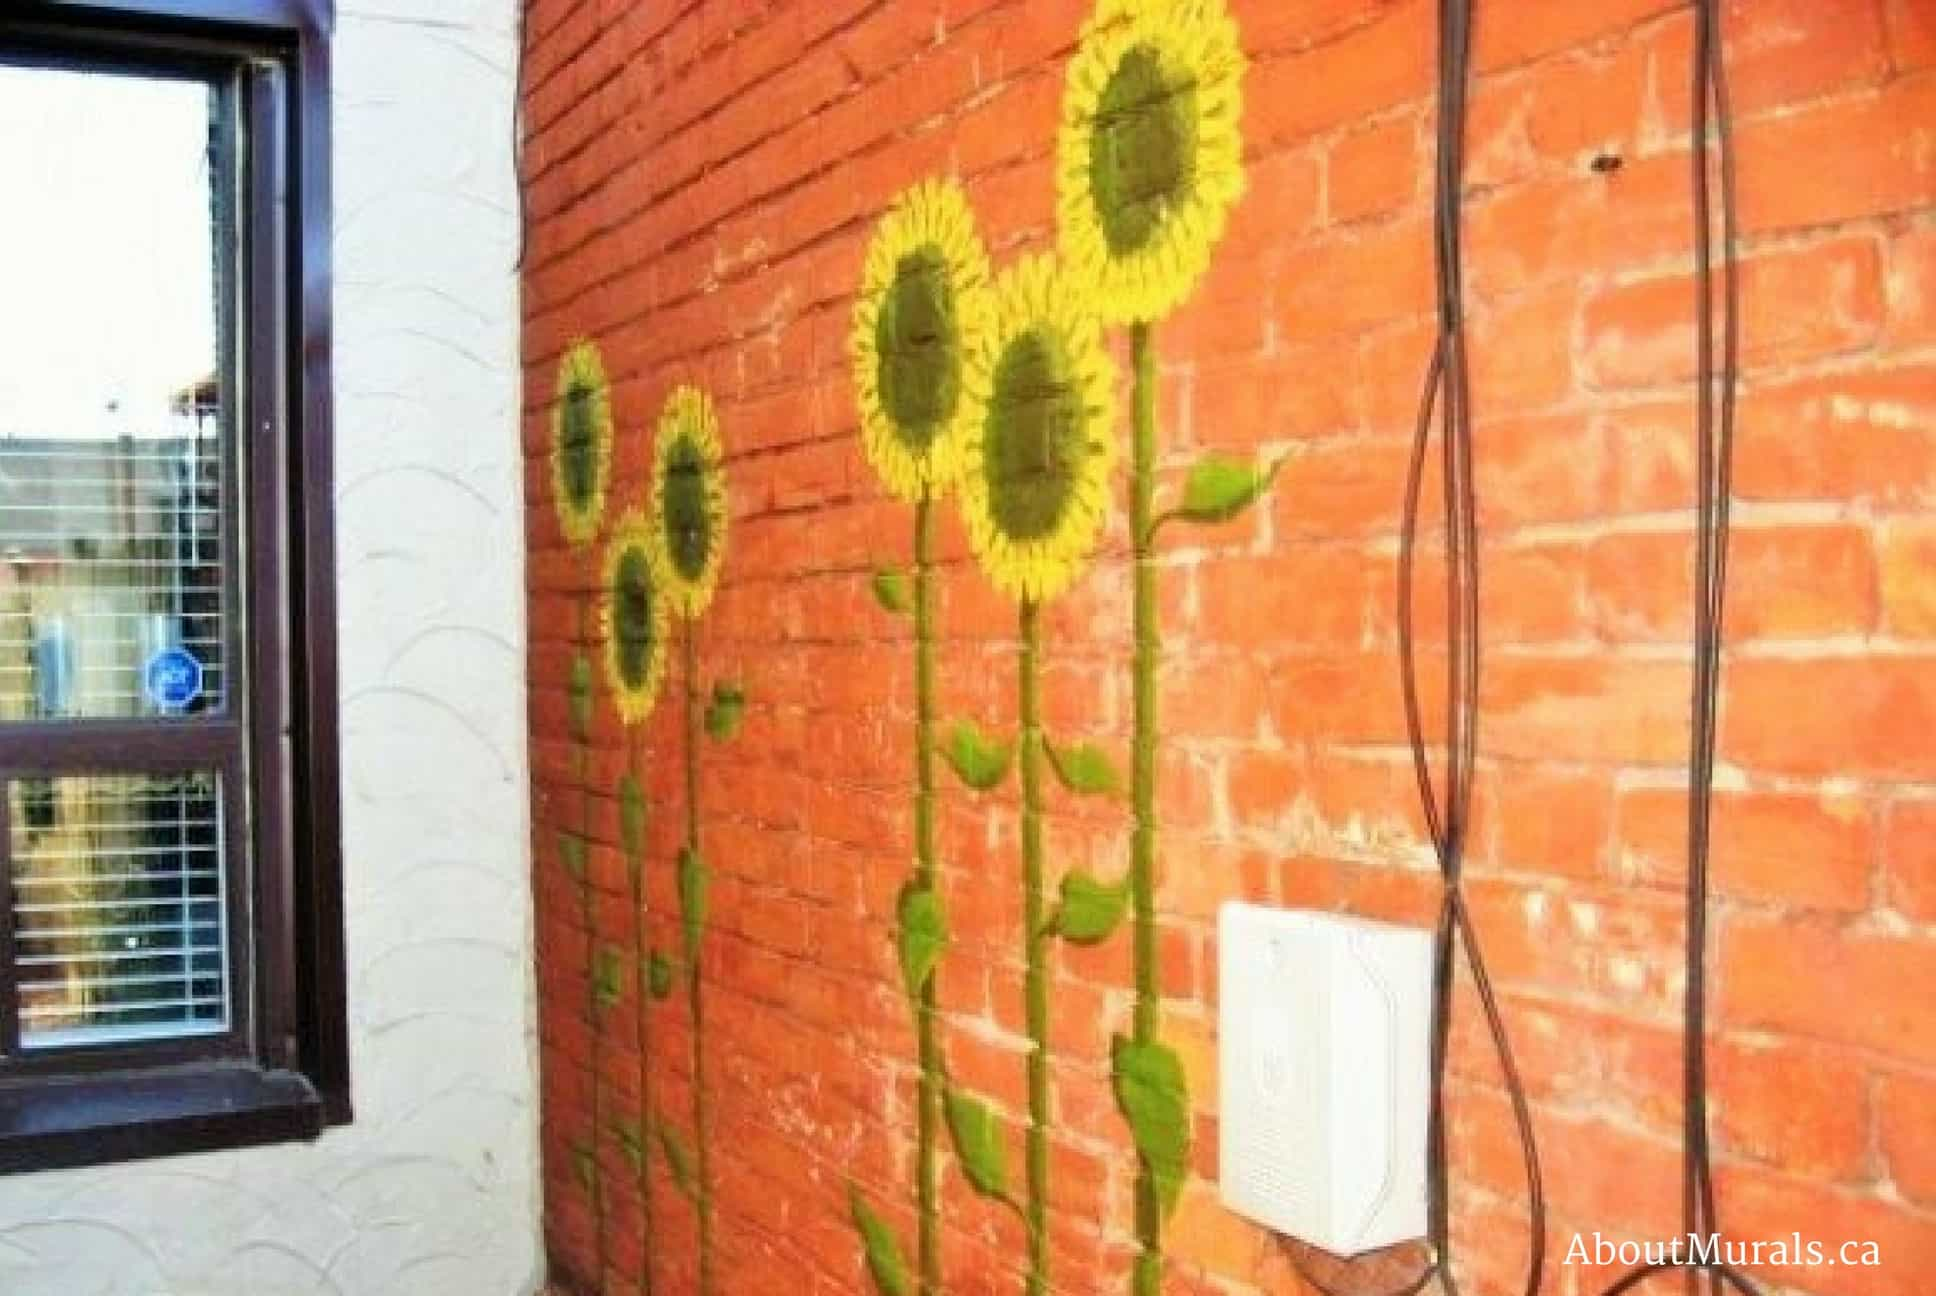 A flower mural featuring sunflowers painted on the side of a brick home